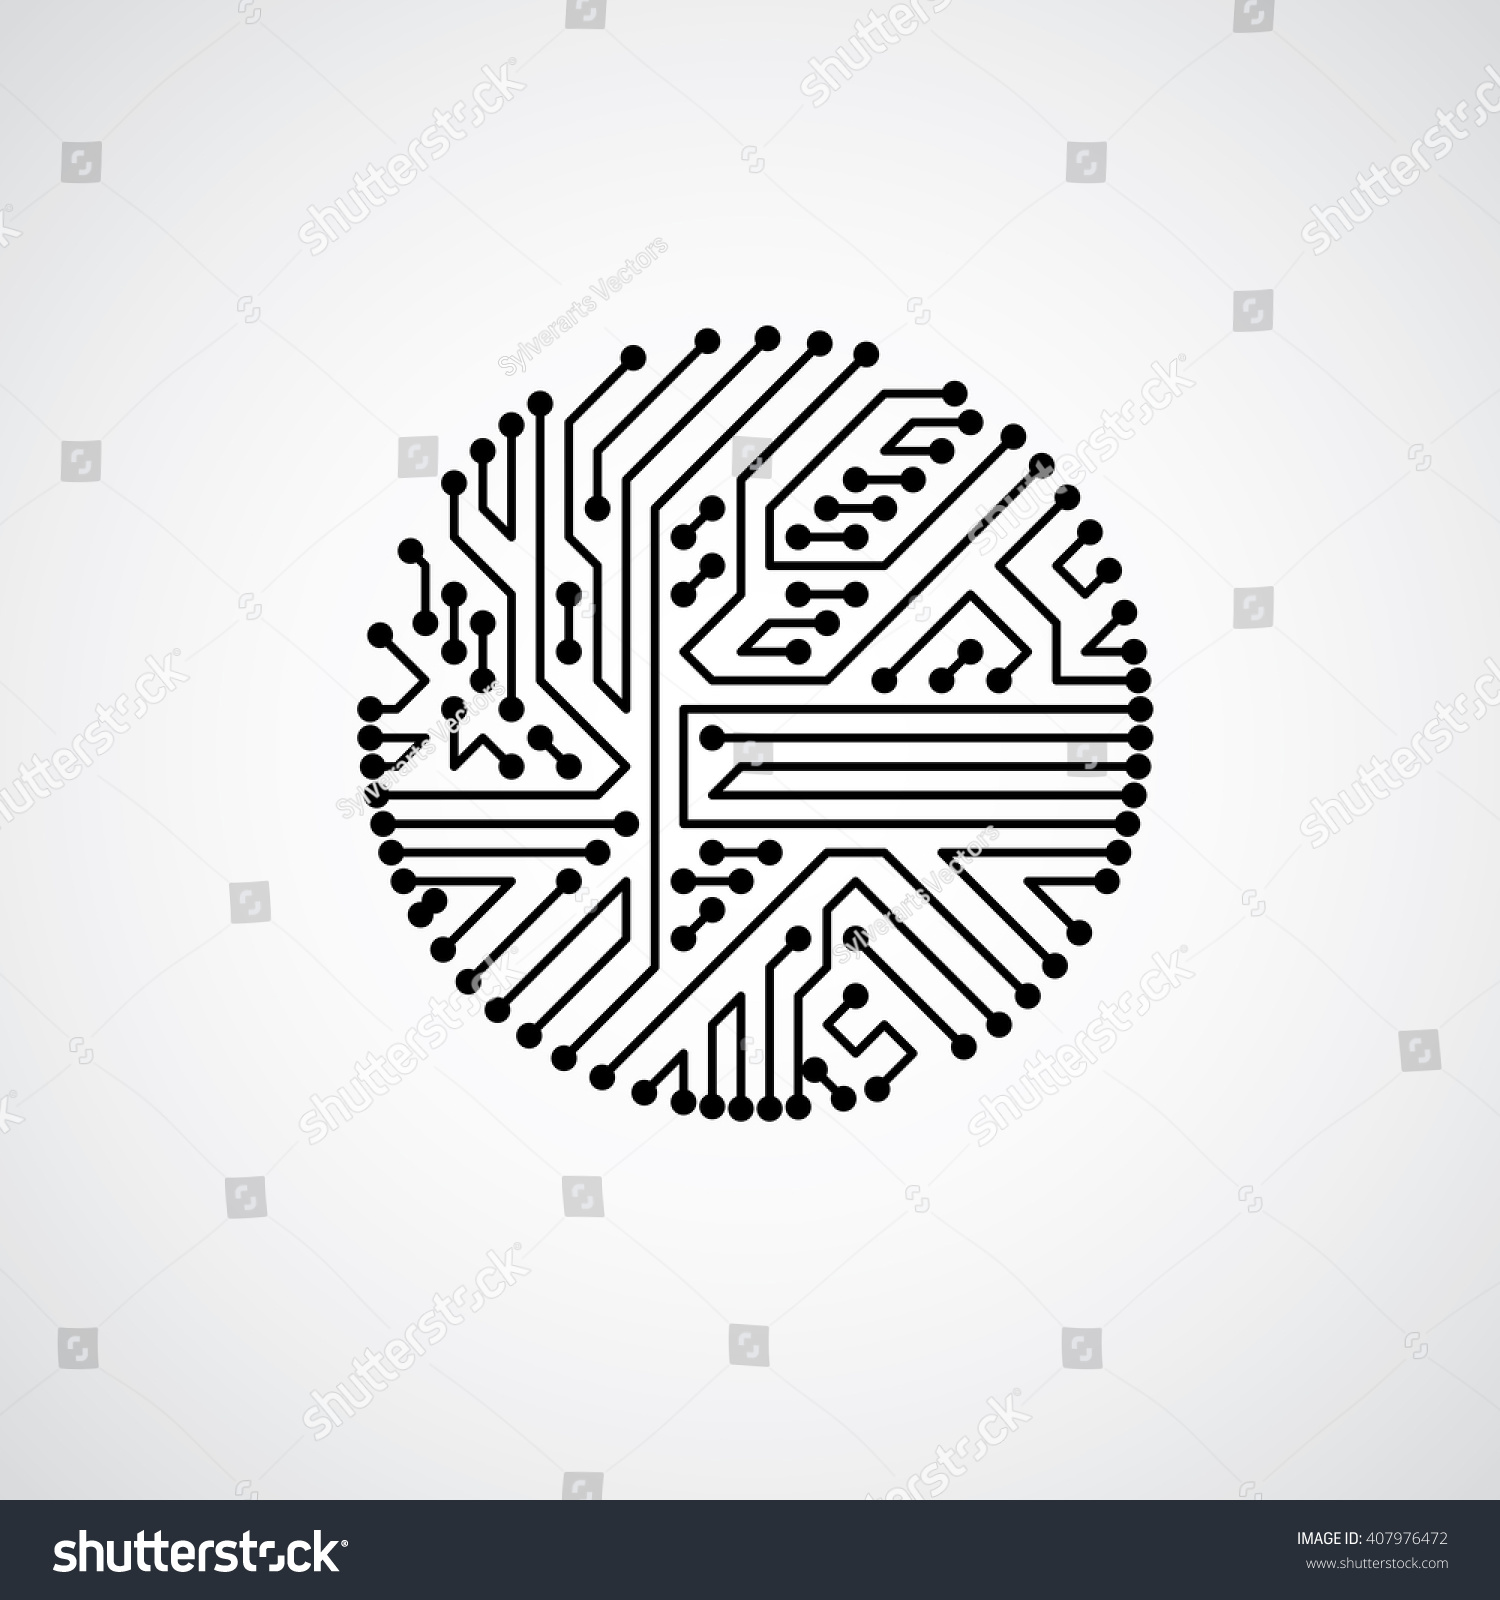 Vector Abstract Computer Circuit Board Illustration Stock Monochrome Round Technology Element With Connections Electronics Theme